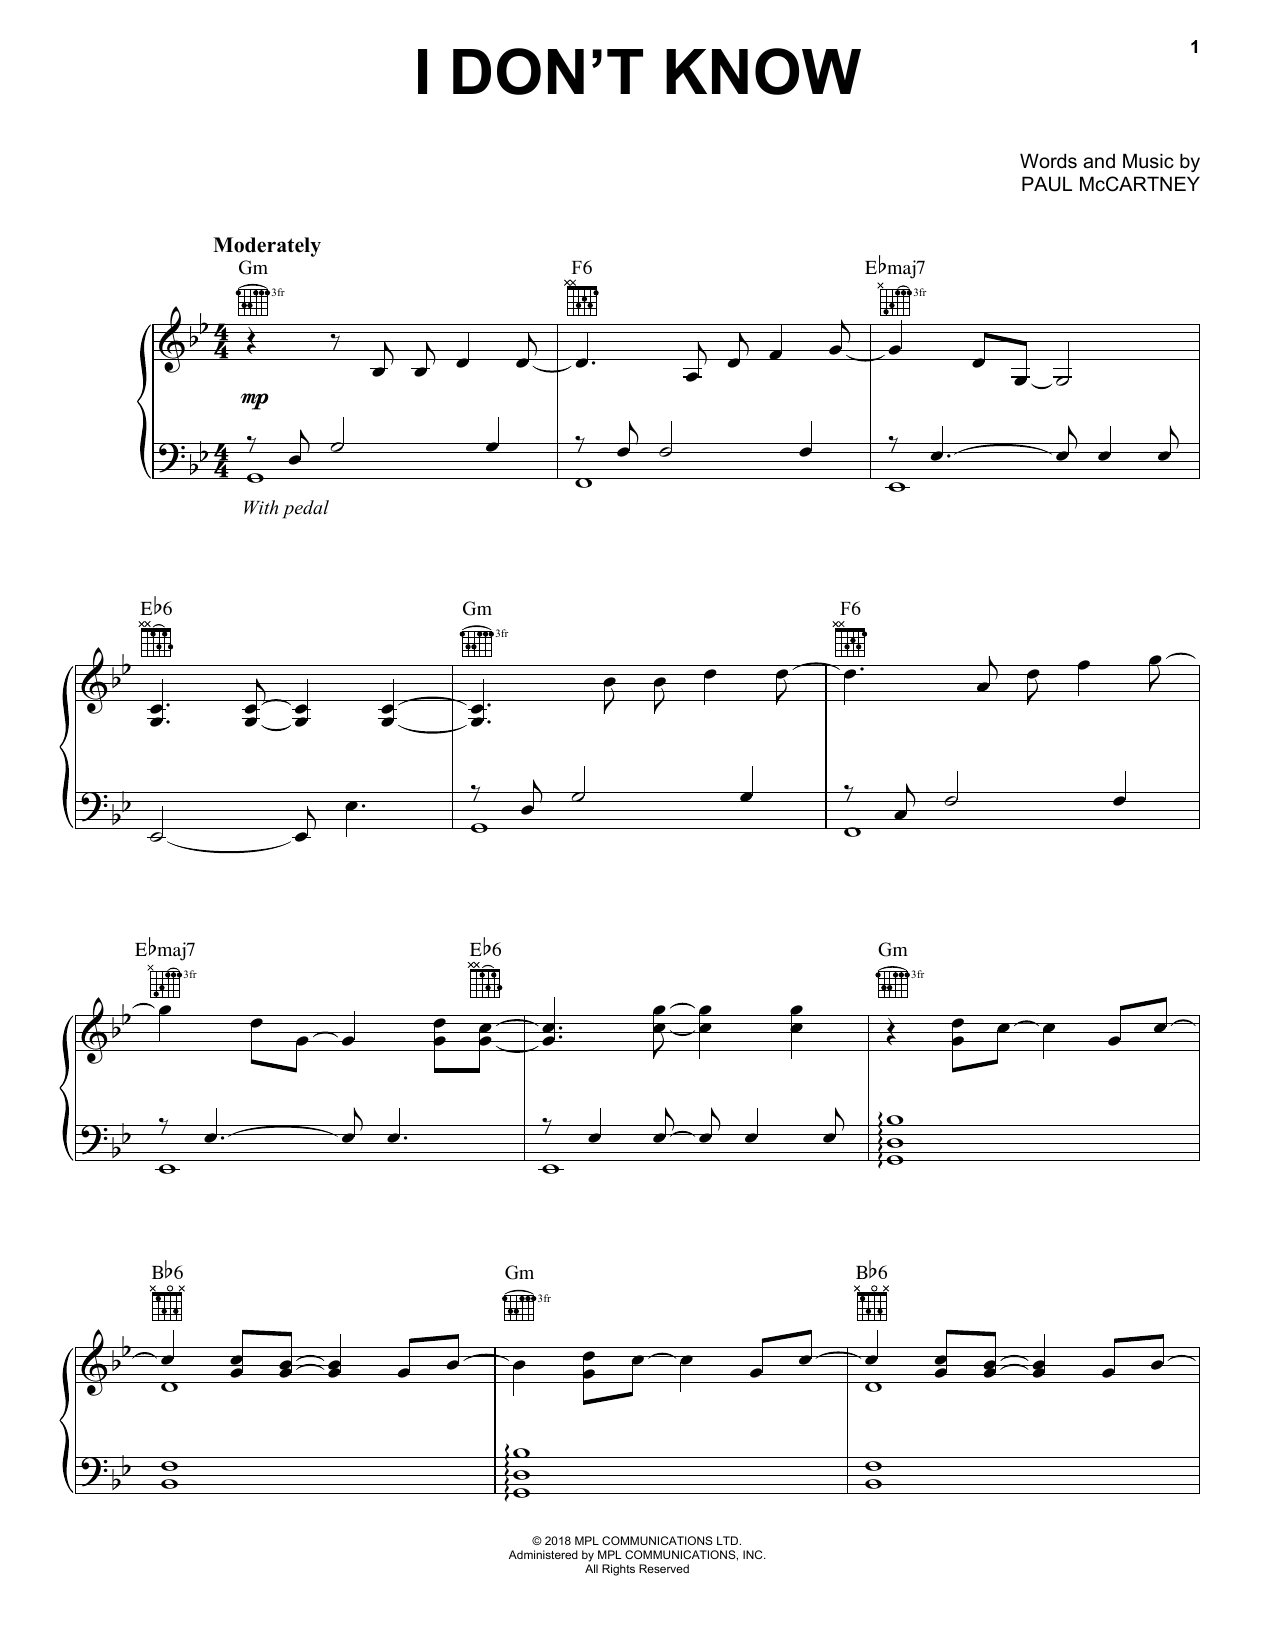 Paul McCartney I Don't Know sheet music notes and chords. Download Printable PDF.